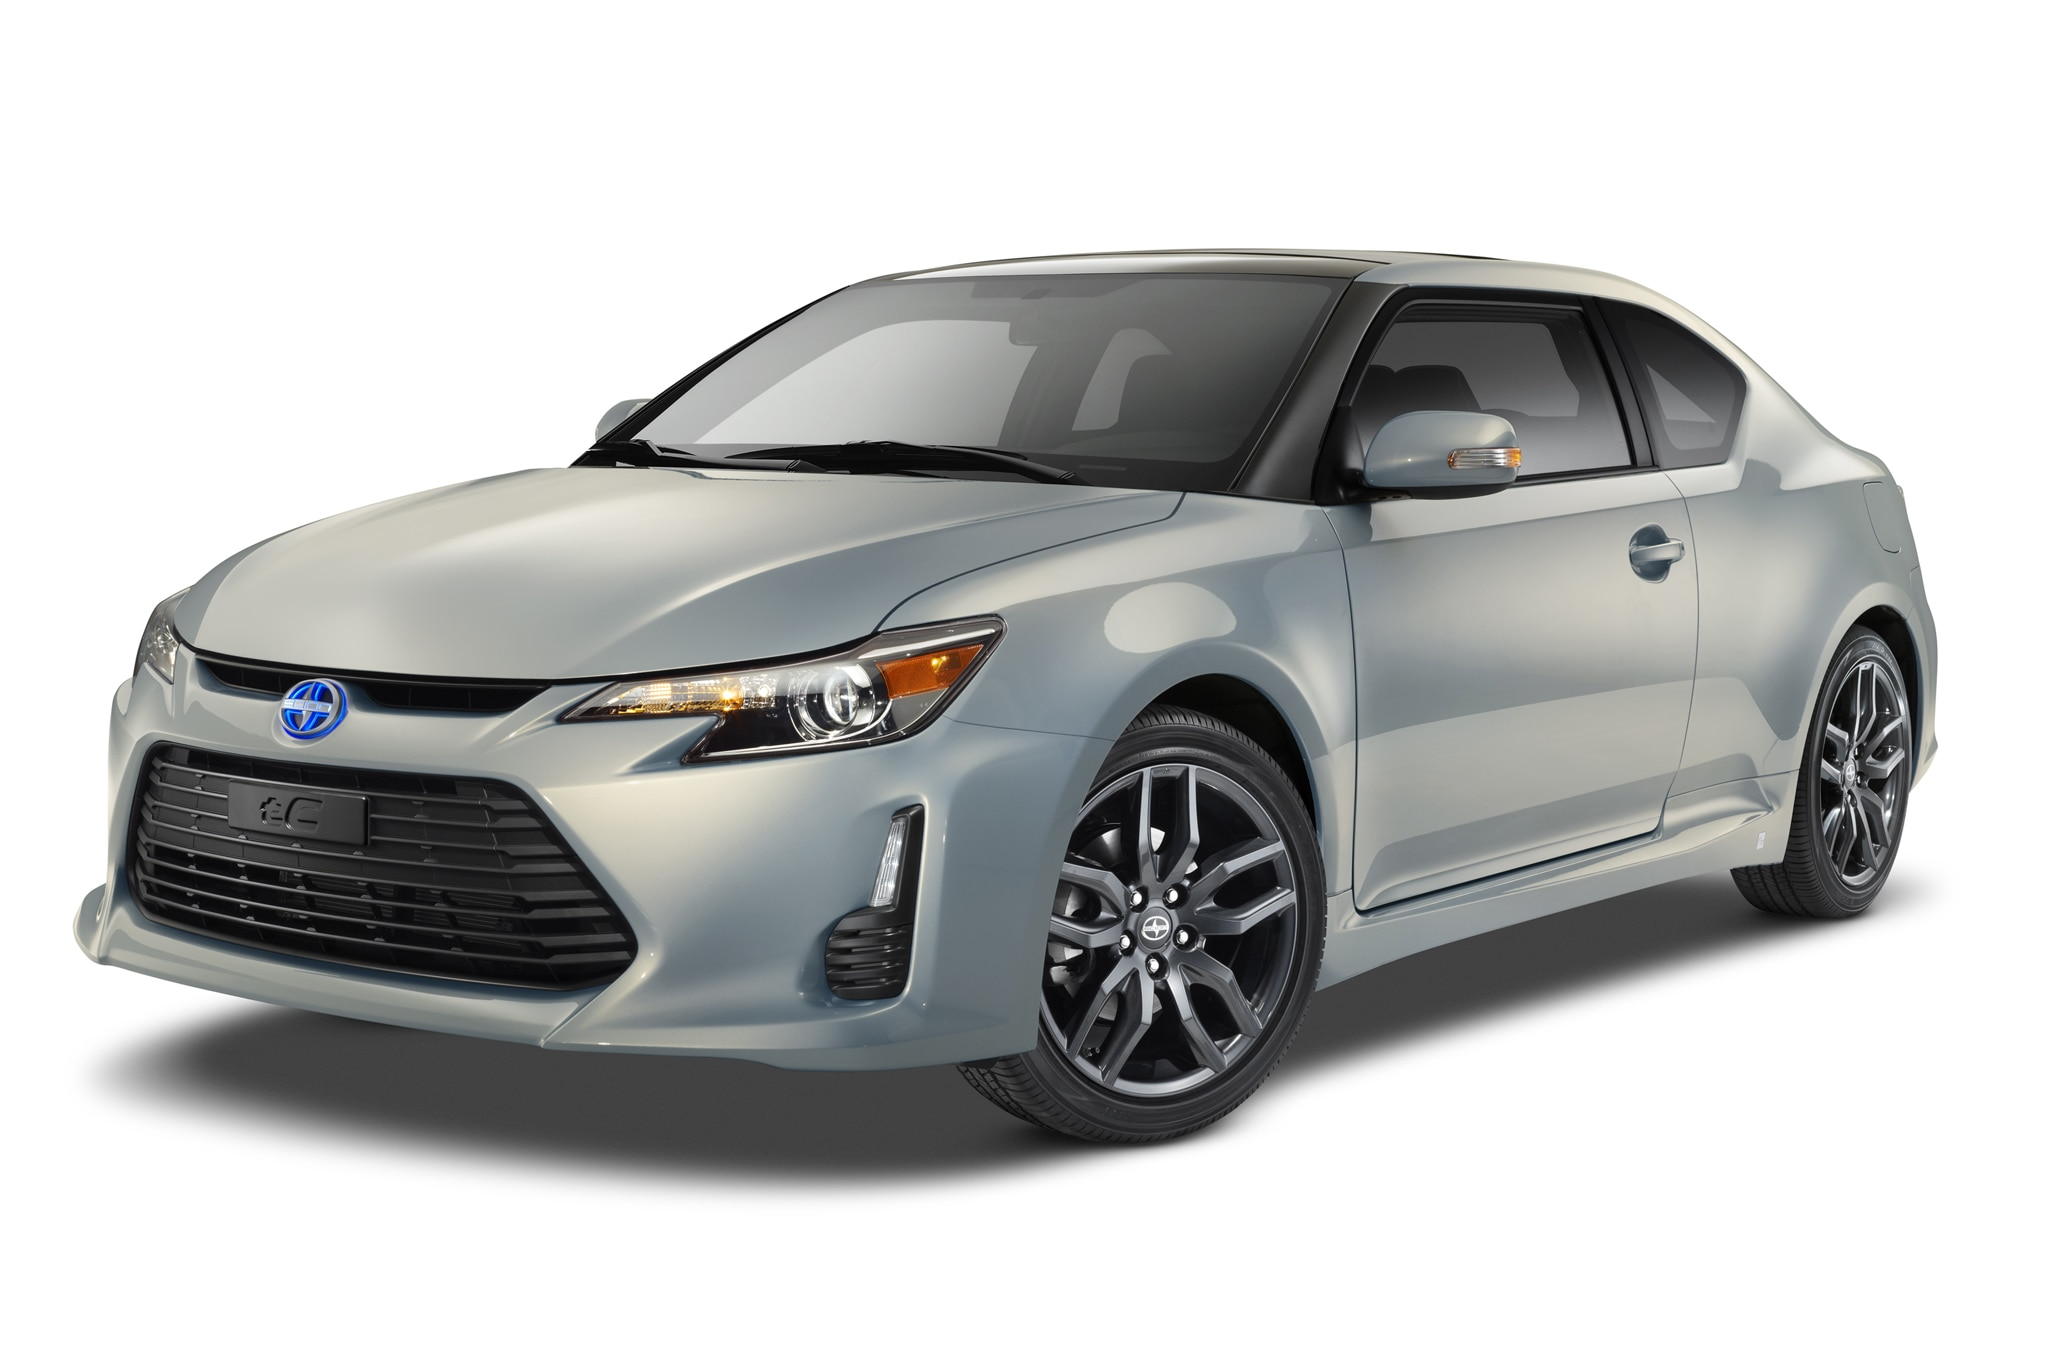 2014 scion tc review ratings specs prices and photos html. Black Bedroom Furniture Sets. Home Design Ideas